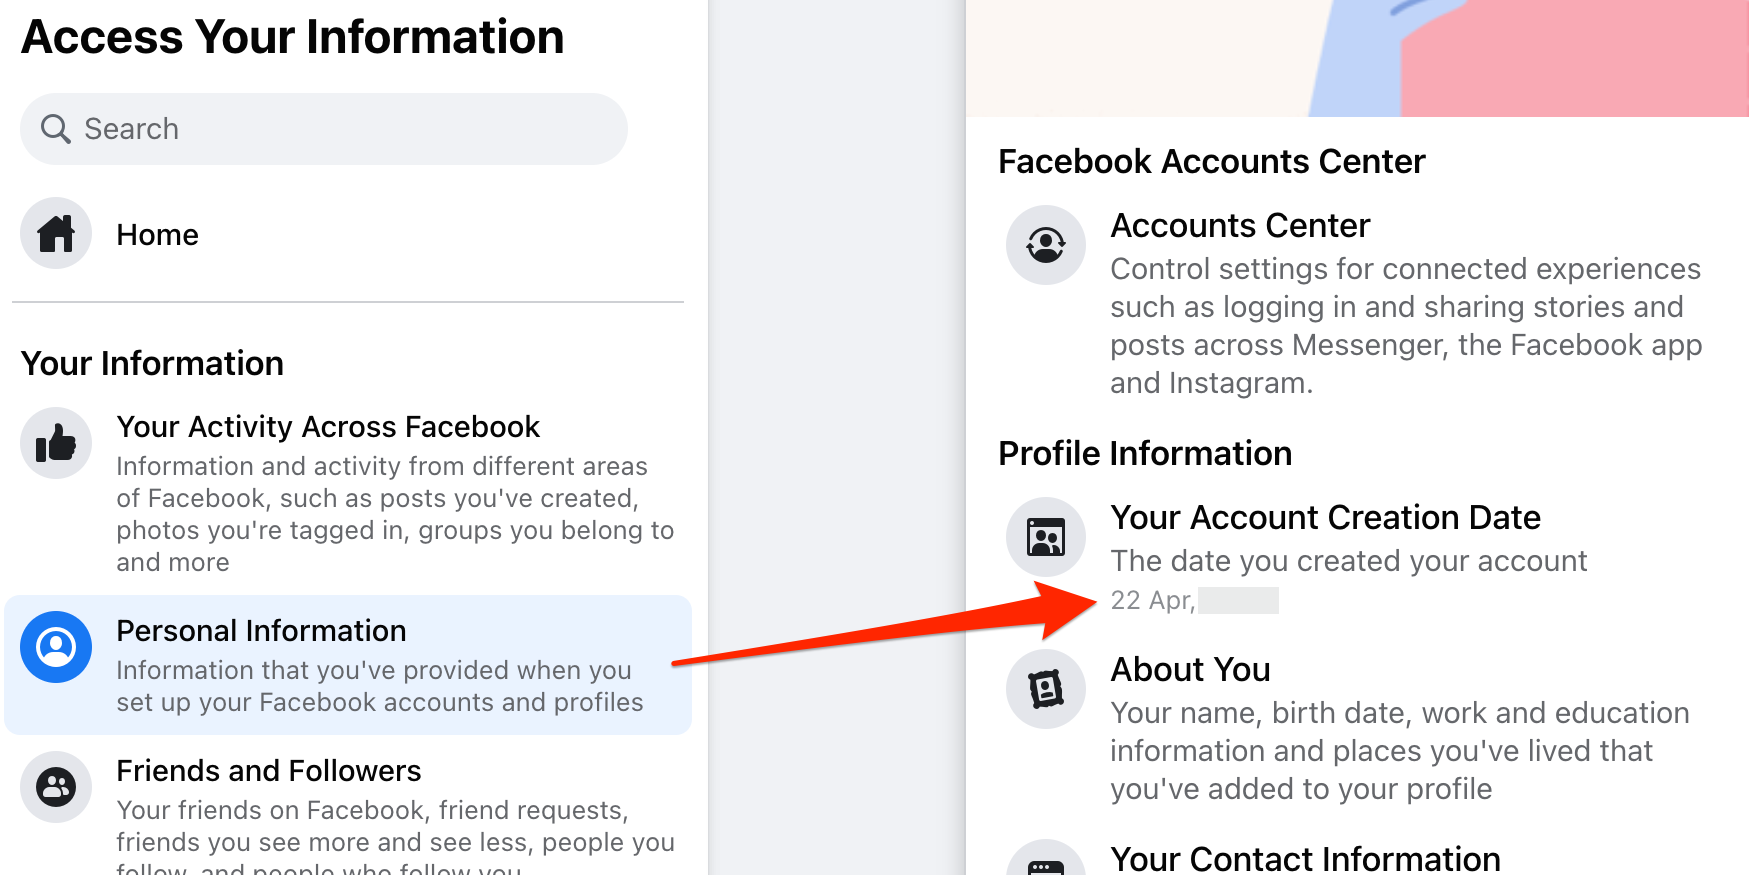 How to Find the Exact Date You Created Your Facebook Account